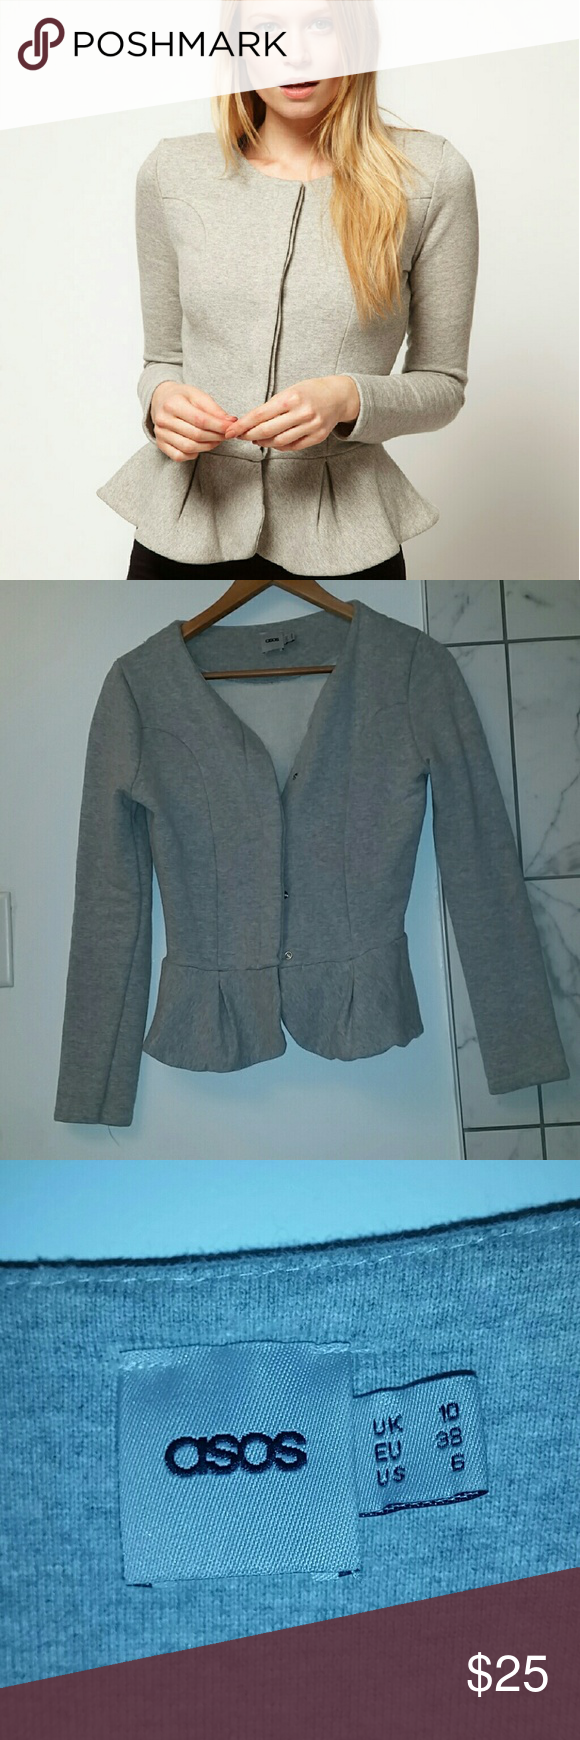 ASOS Grey Peplum Cardigan Sweater Pre-owned peplum cardigan that can be worn open or buttoned up. Runs small. ASOS Sweaters Cardigans